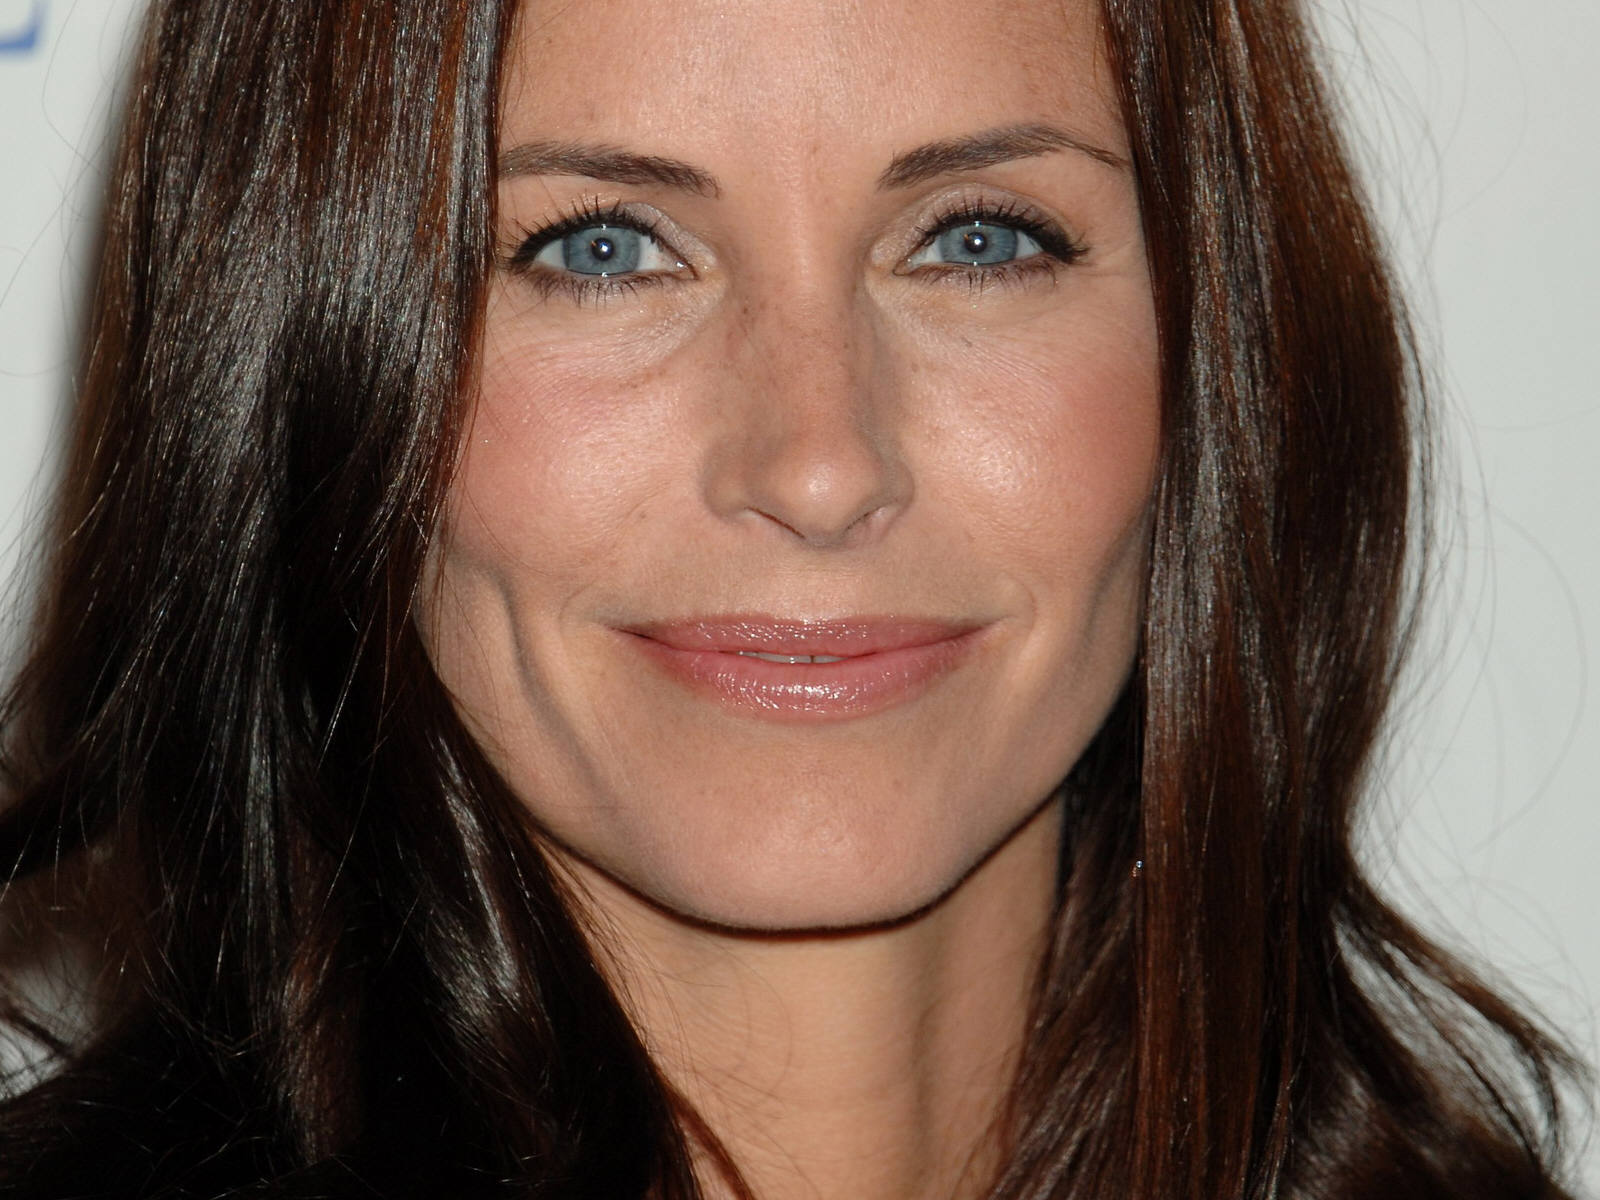 courteney cox face wallpaper 54462